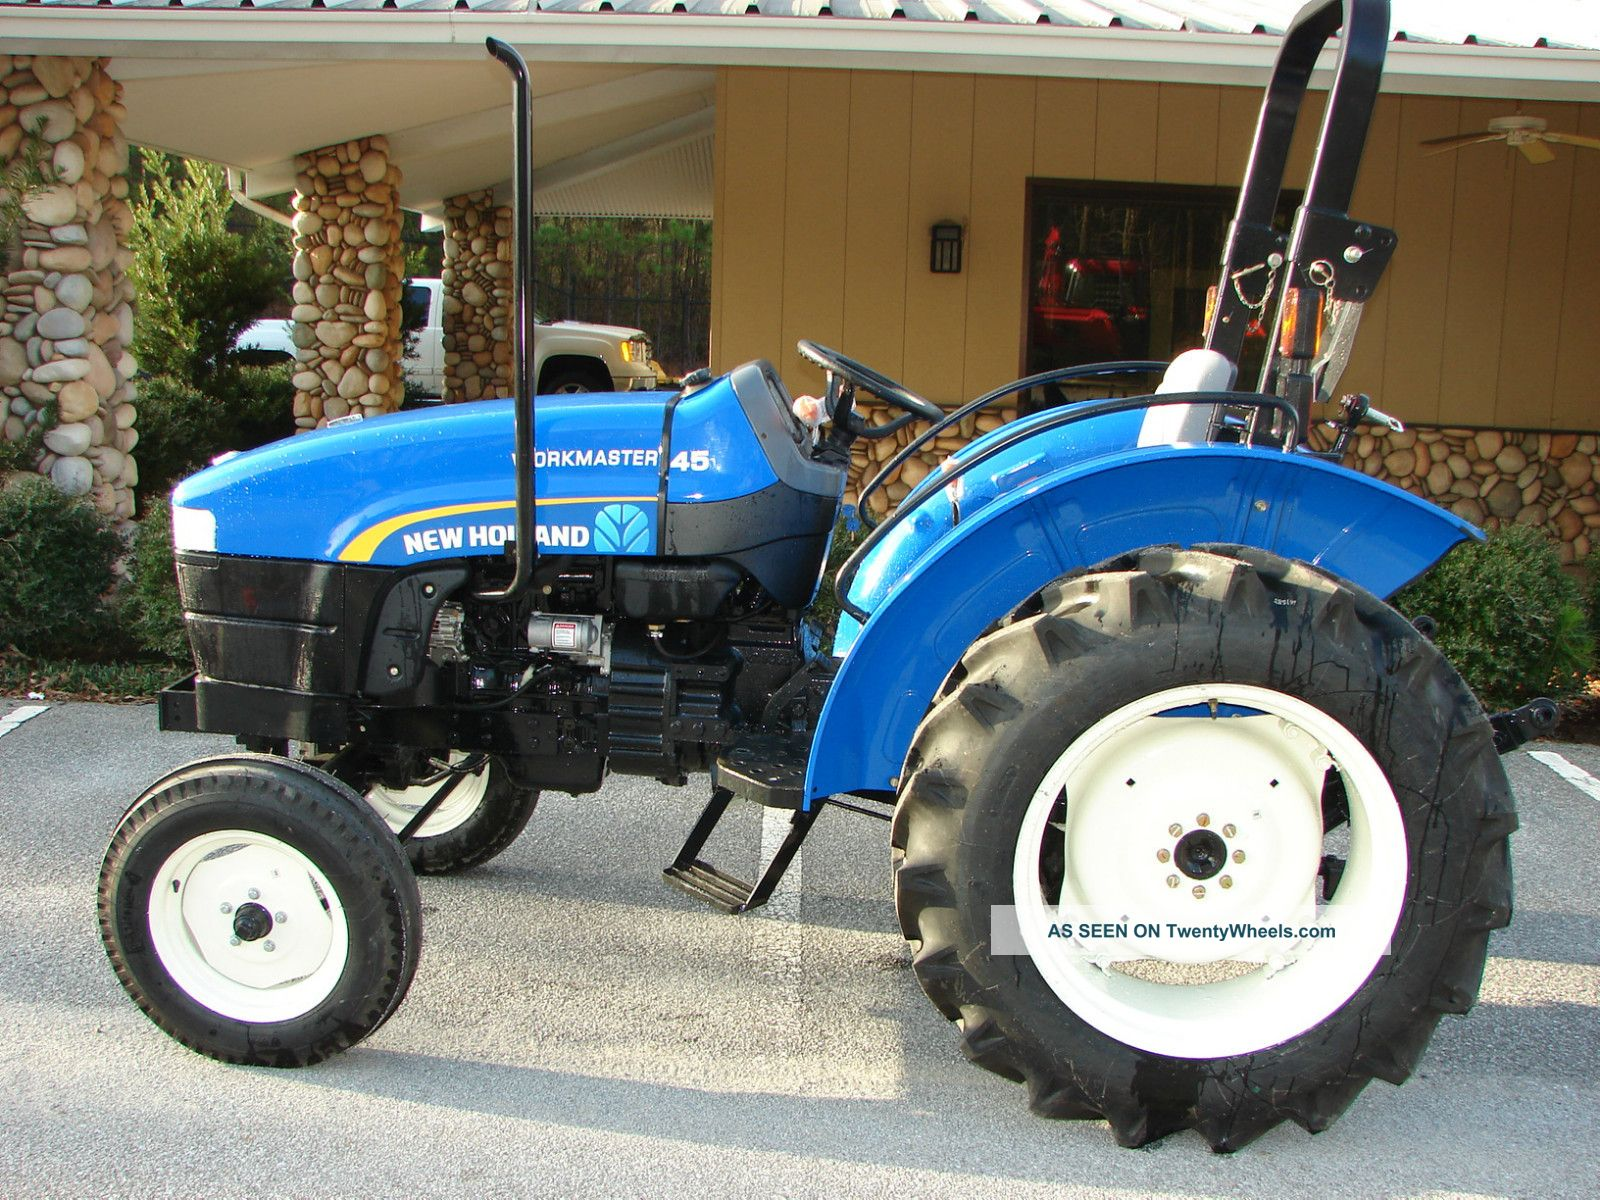 Ford 3930 Tractor Data Images Of Home Design New Holland Wiring Diagrams 75b Marvellous Workmaster 75 Diagram Photos